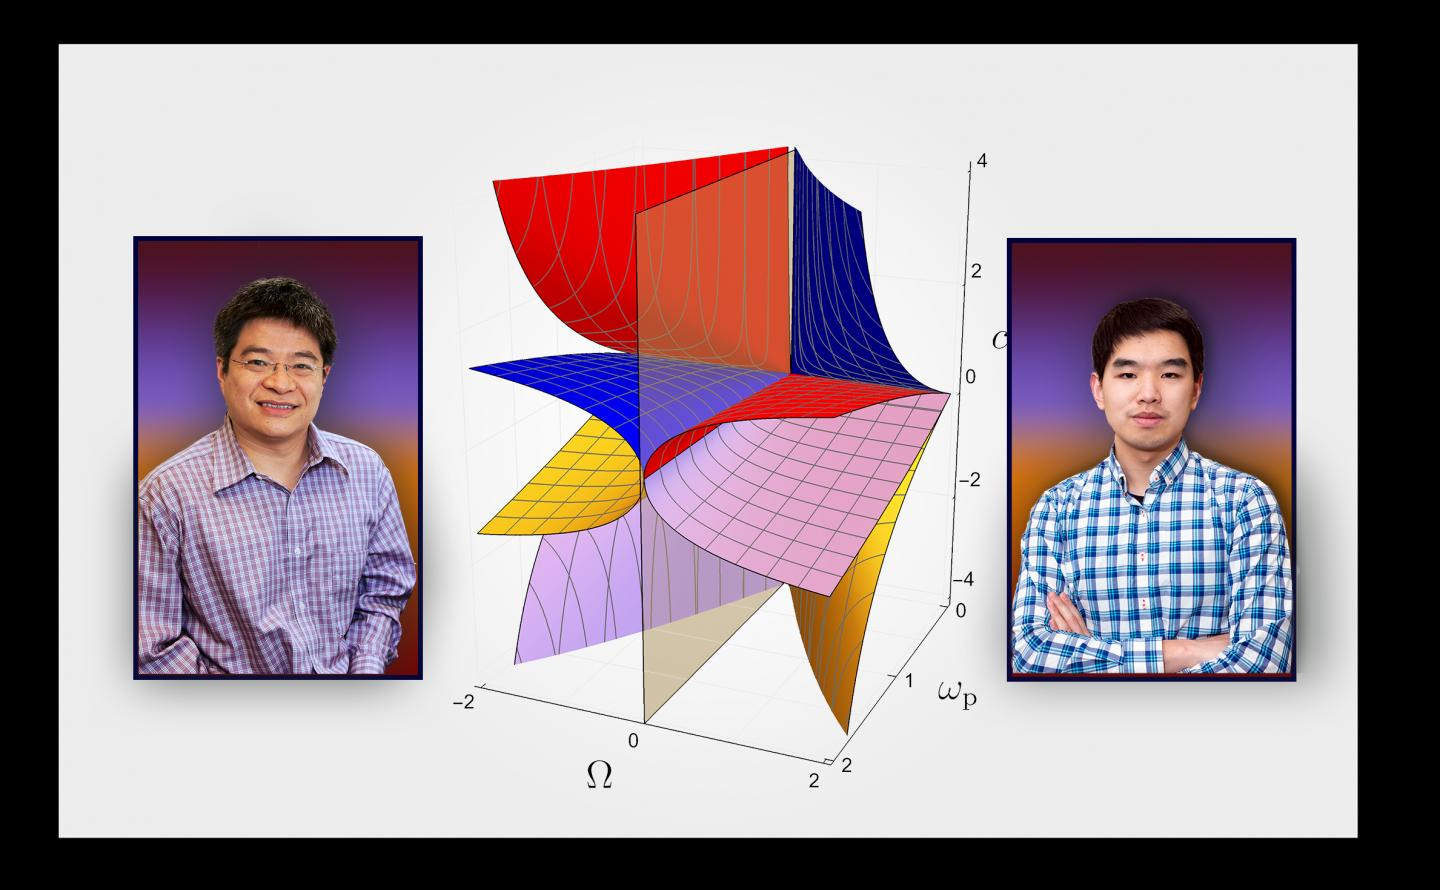 Physicists Hong Qin and Yichen Fu